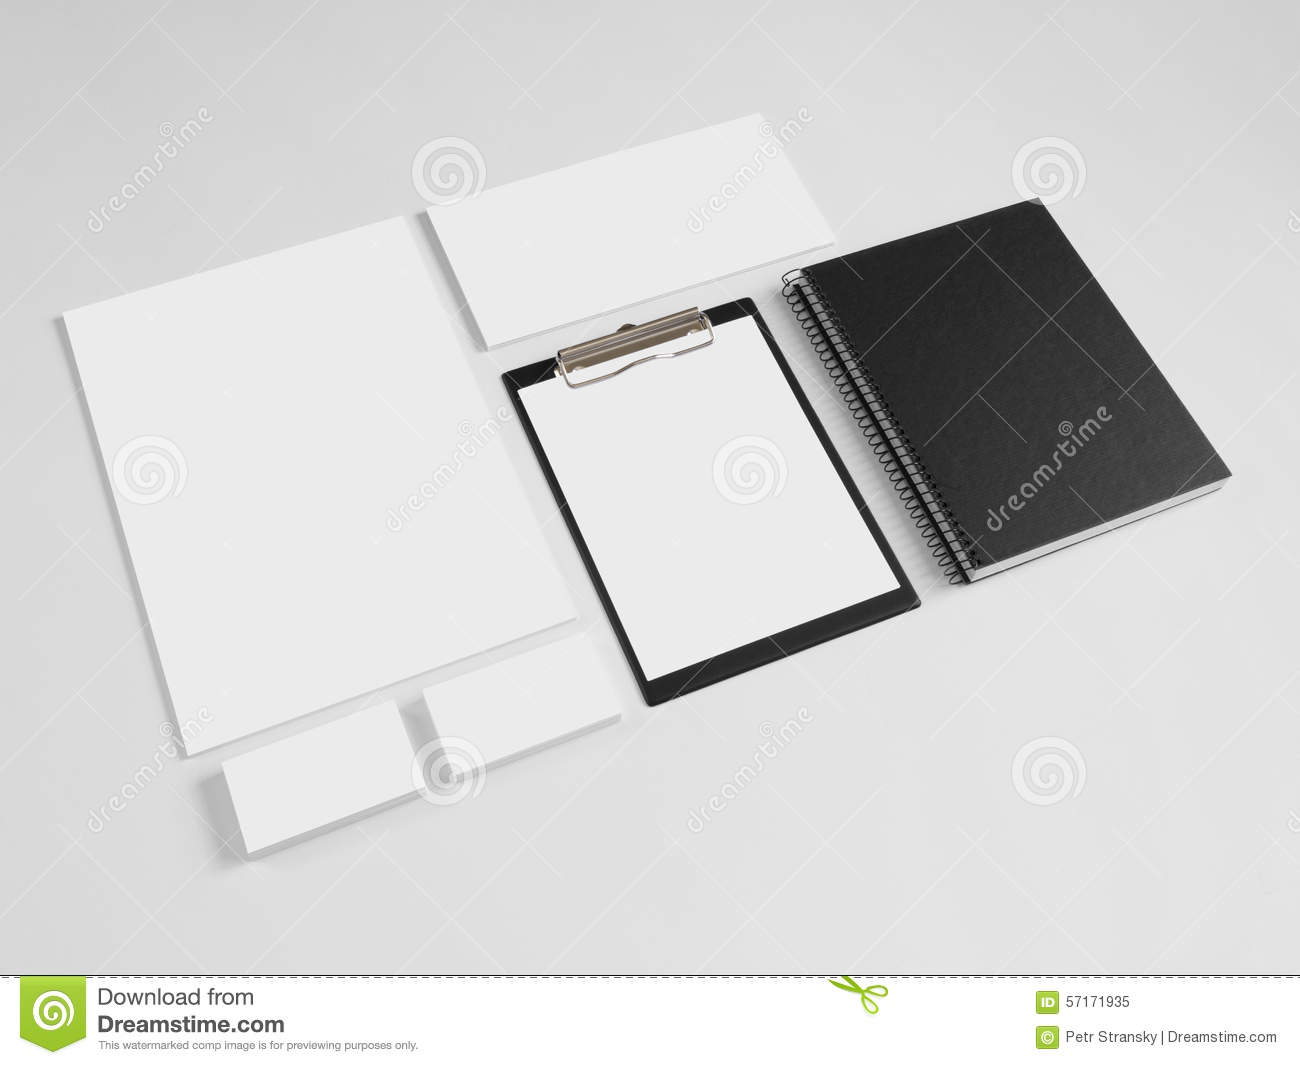 collection of branding corporate design templates stock photo